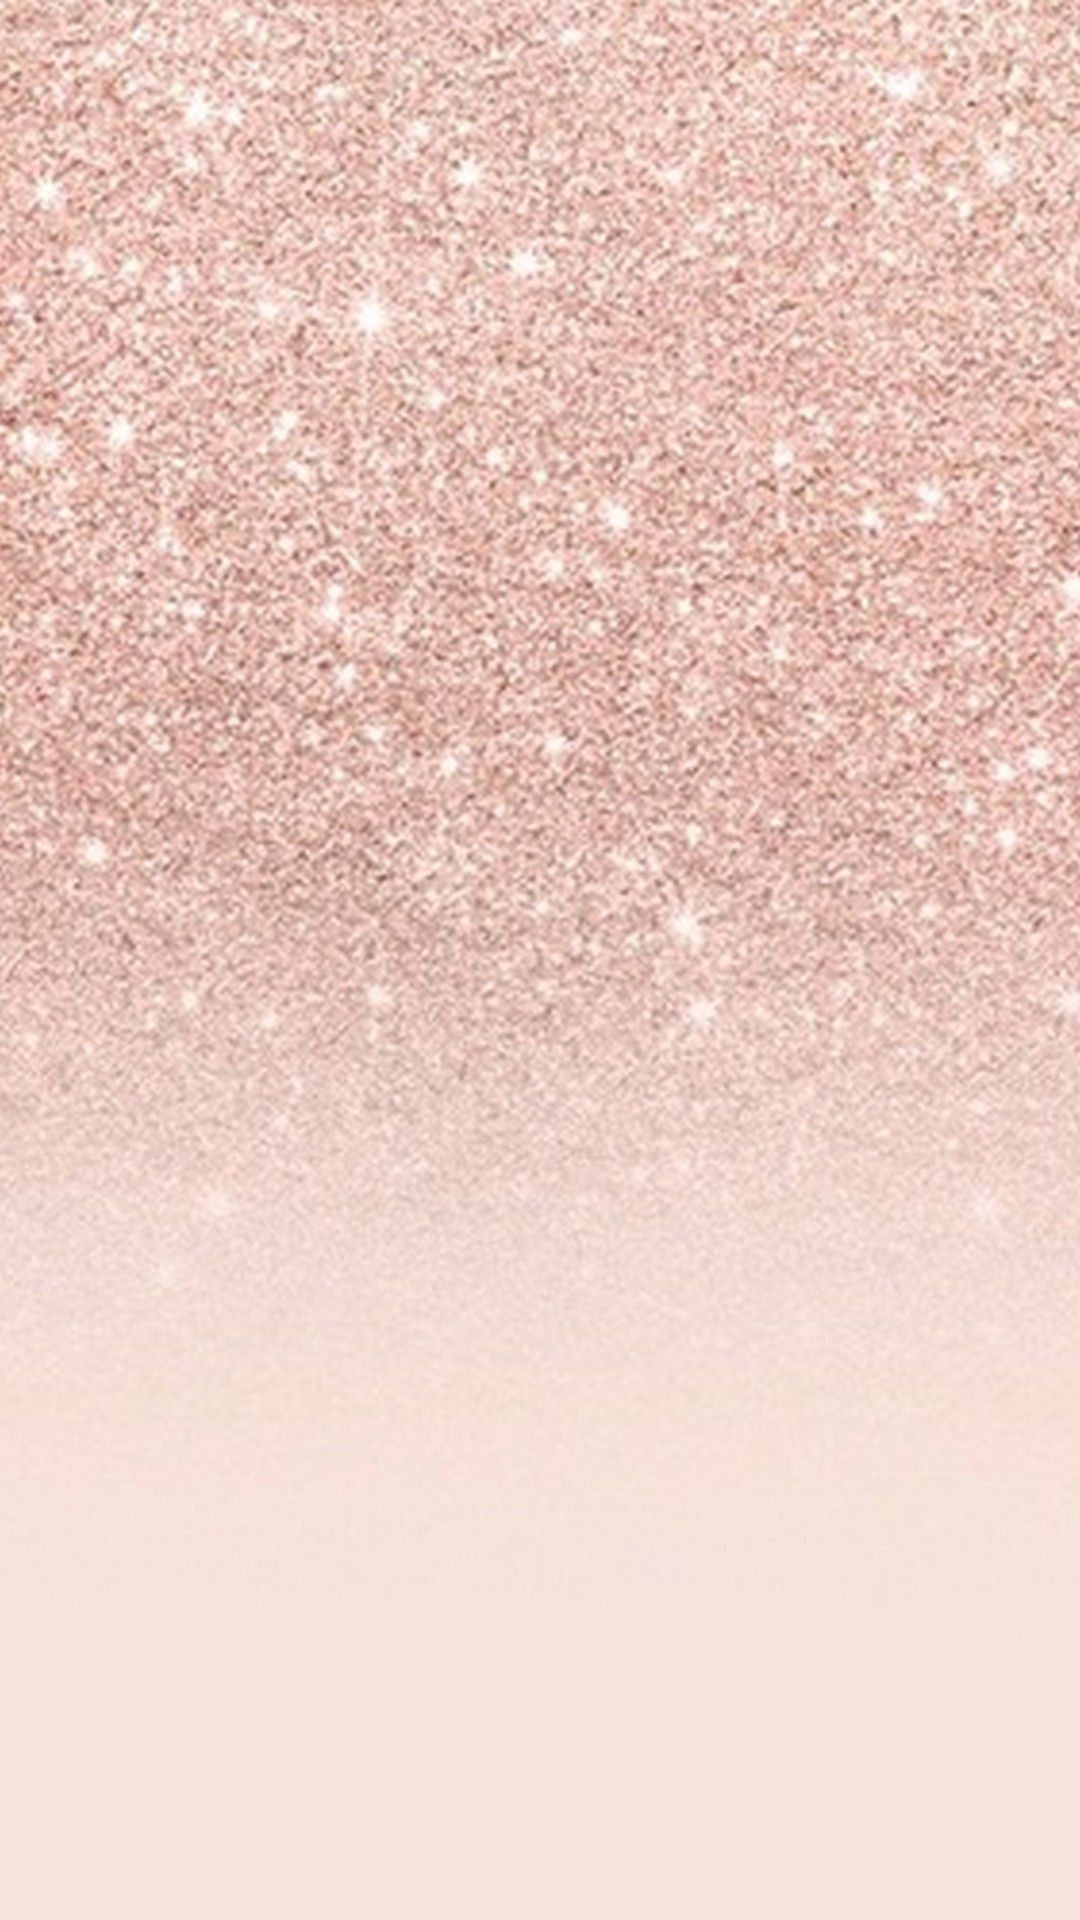 Wallpaper Rose Gold Glitter Android   Best Android Wallpapers ...